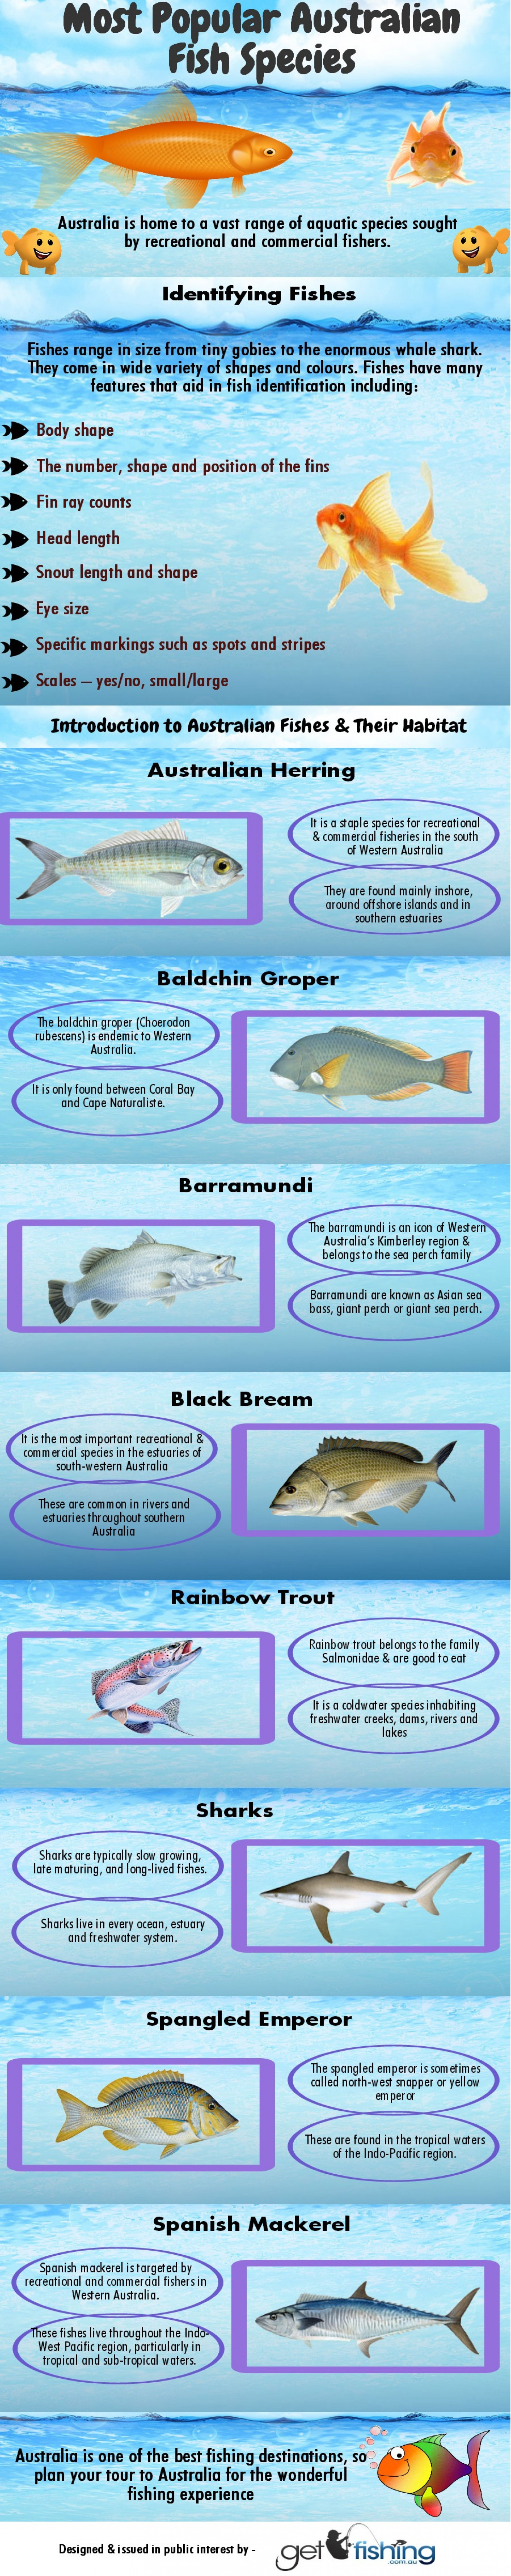 Most Popular Australian Fish Species Infographic